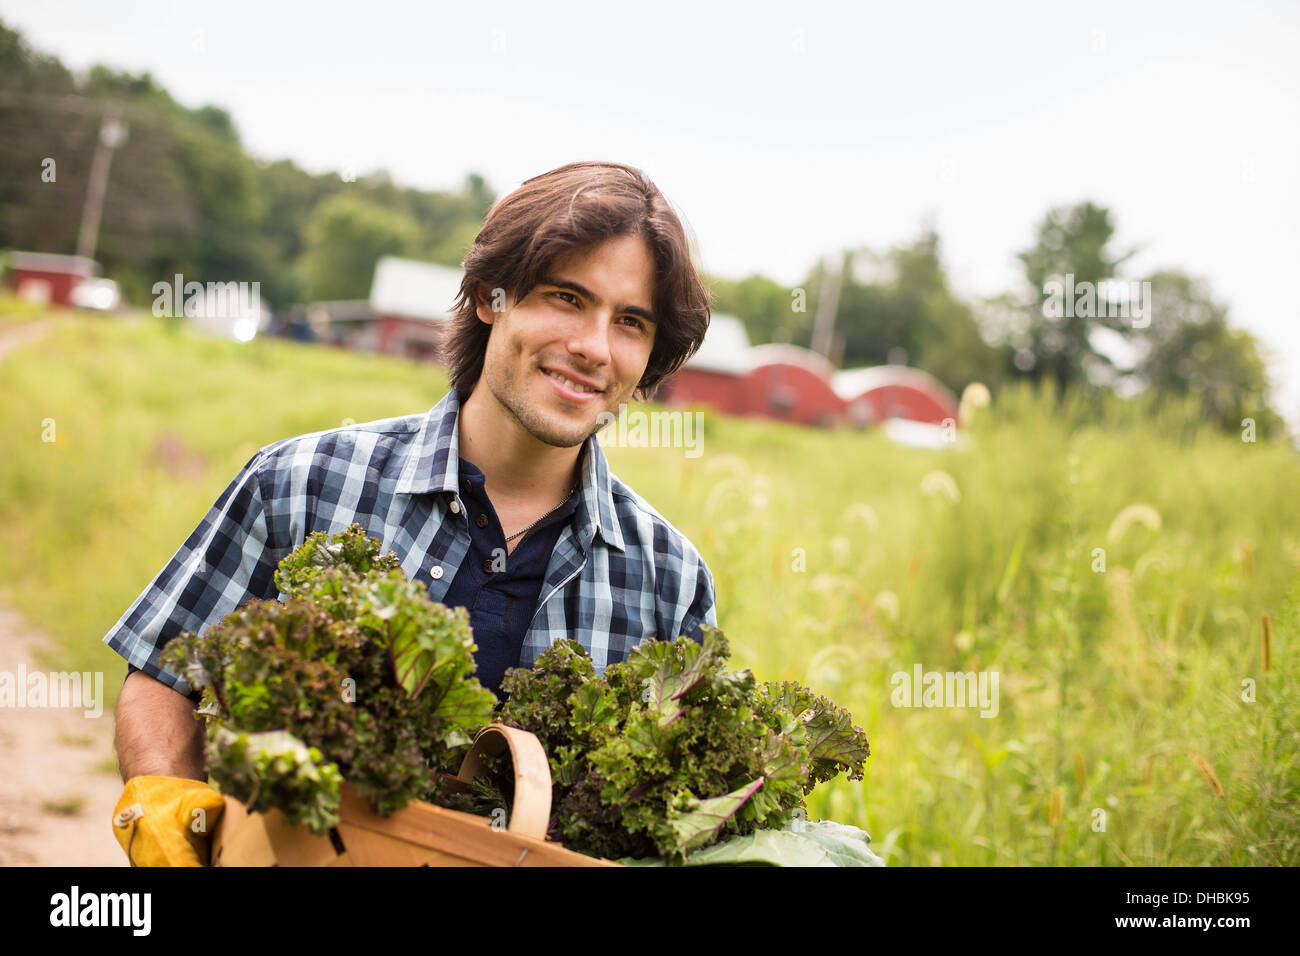 A man carrying a basket full of fresh picked organic vegetables, working on an organic farm. - Stock Image